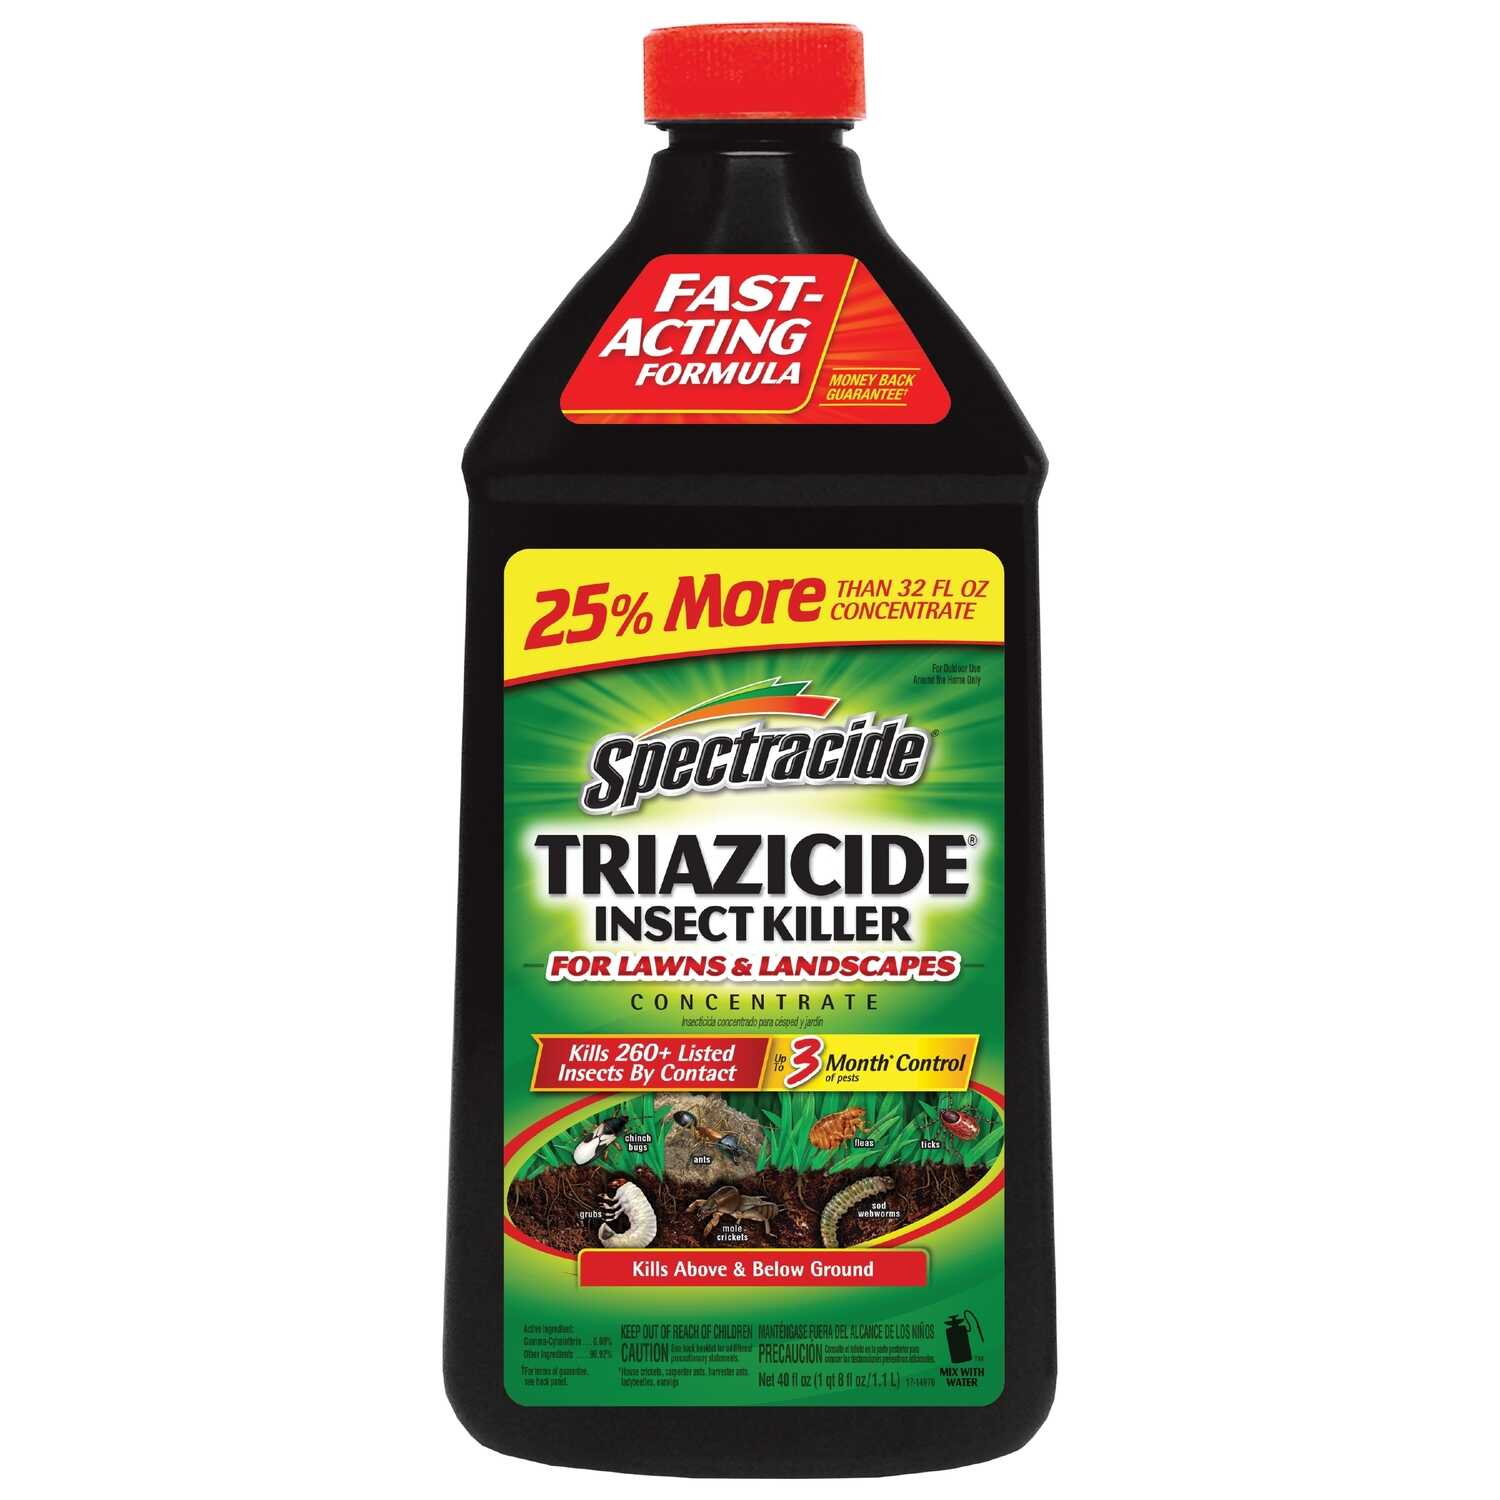 Spectracide  Triazicide  Insect Killer  40 oz.